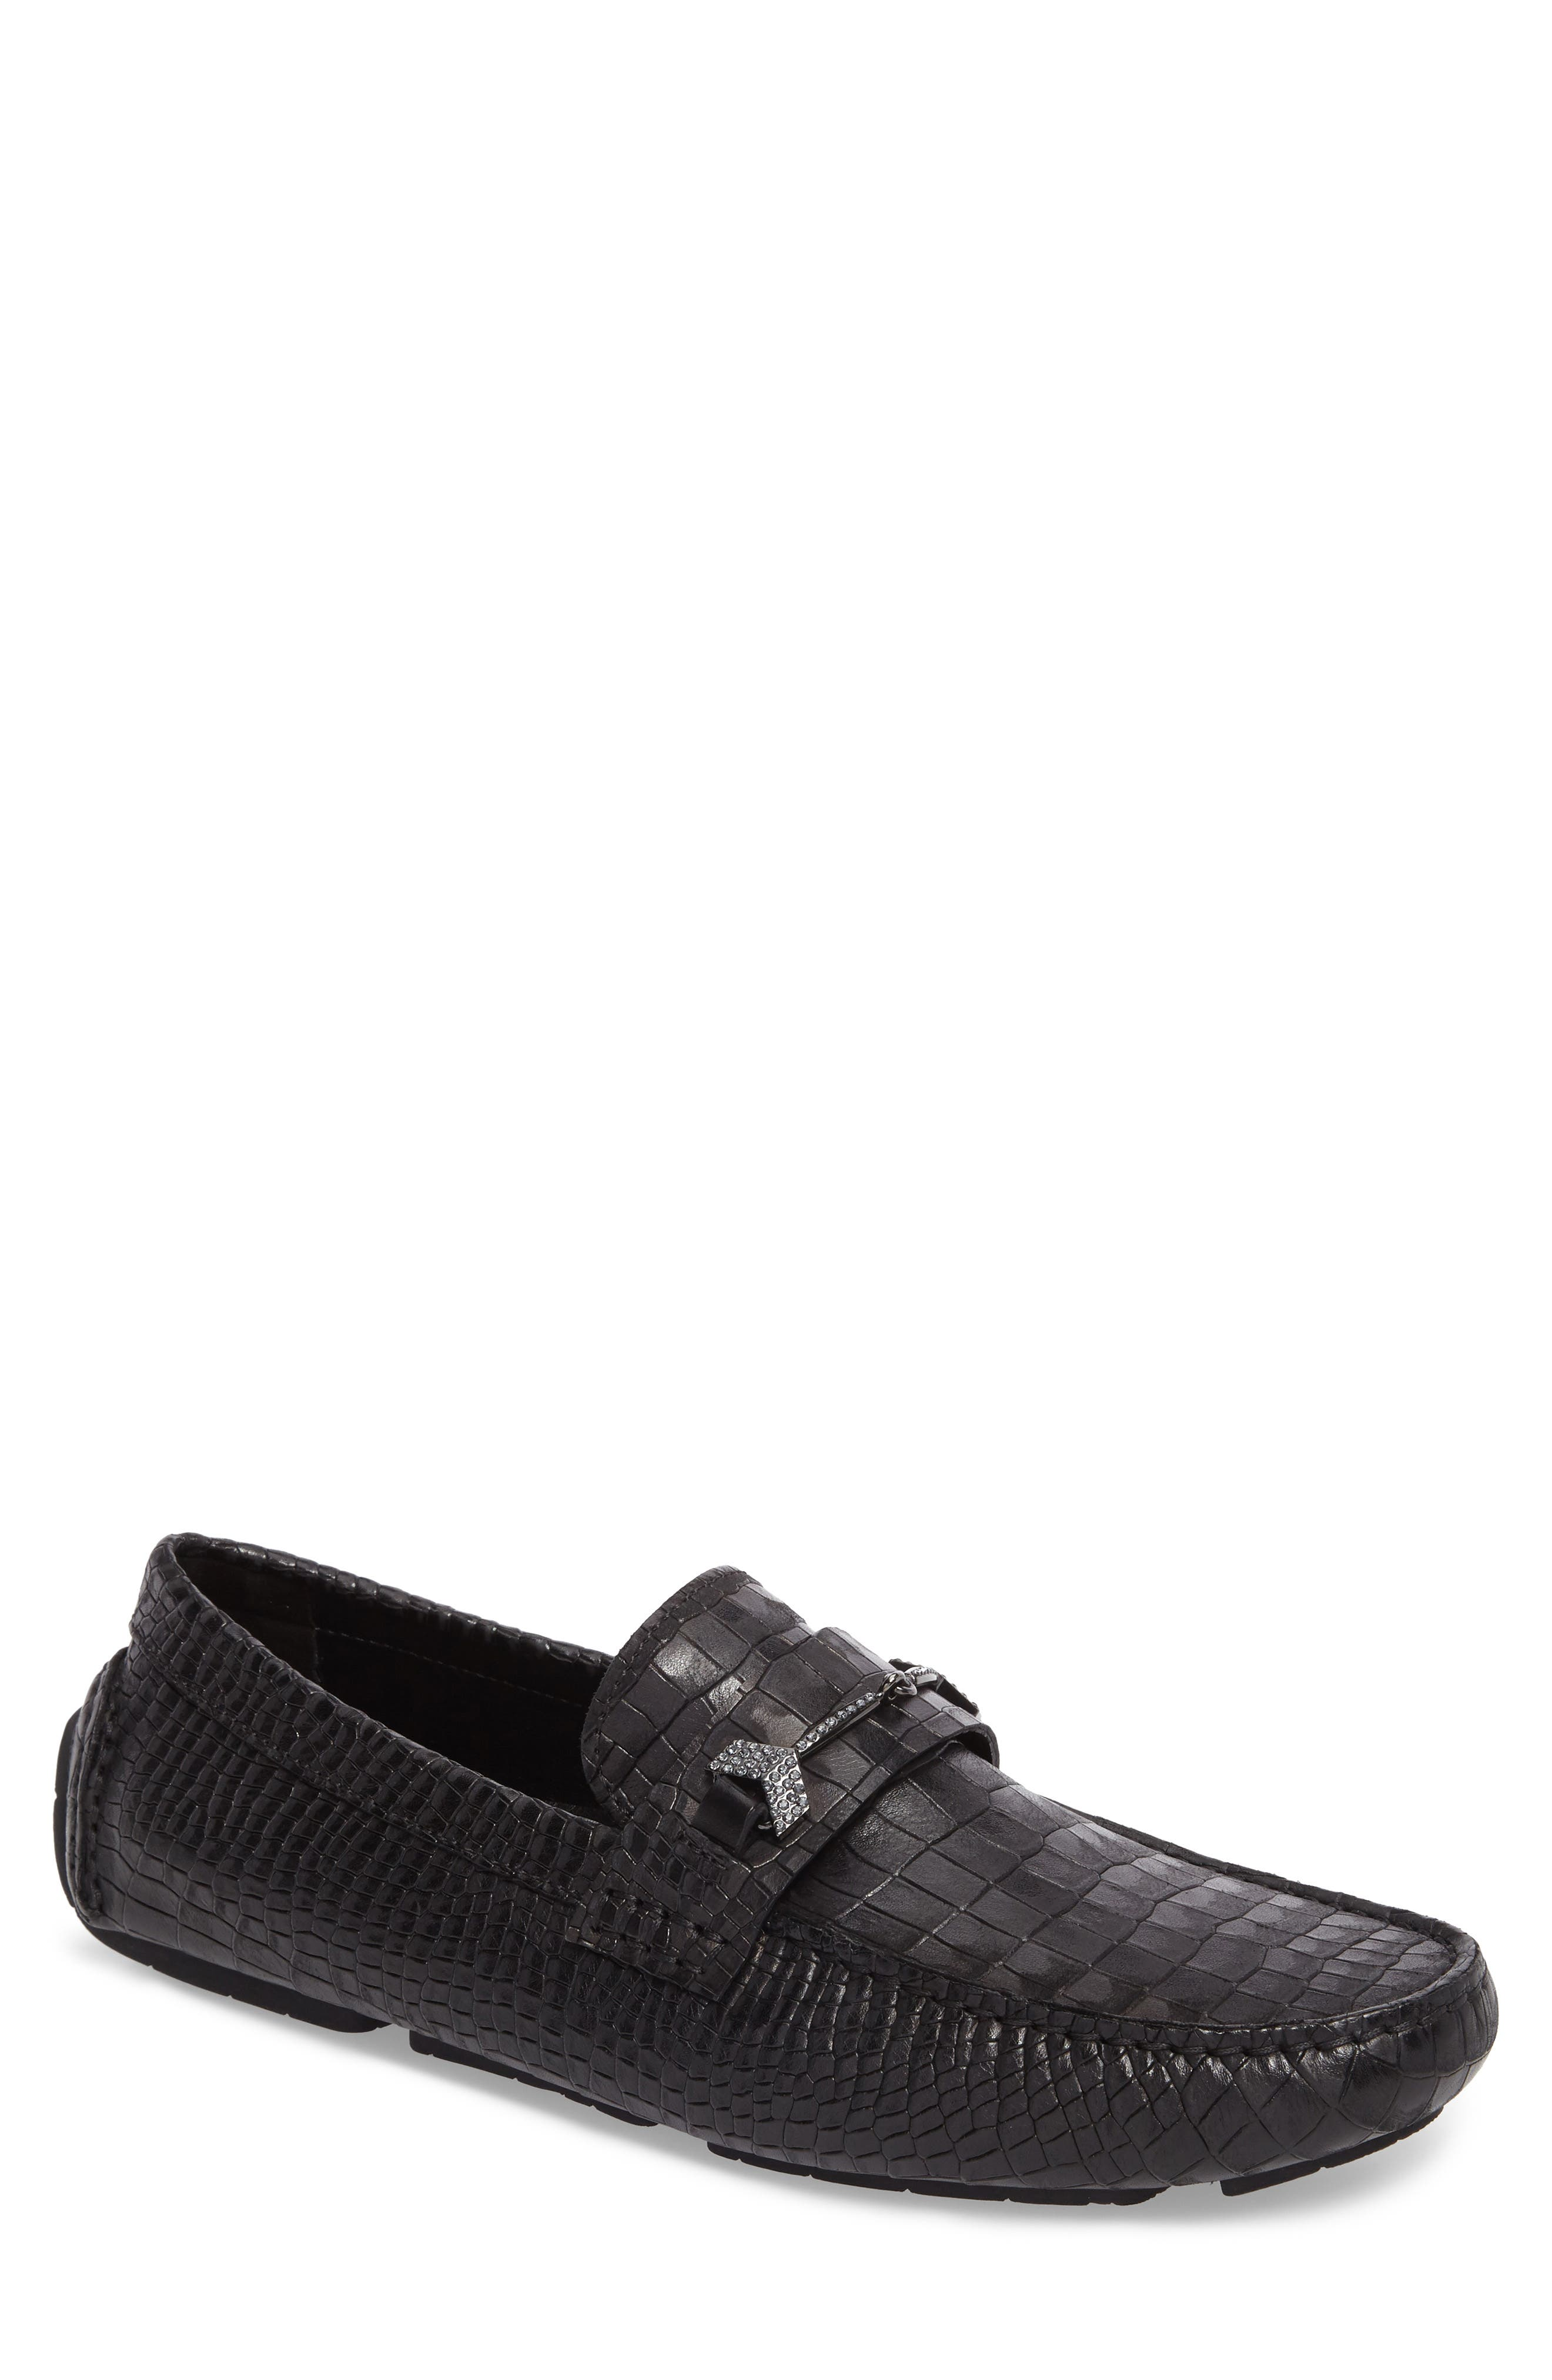 Brewer Croc Textured Driving Loafer,                         Main,                         color, Black